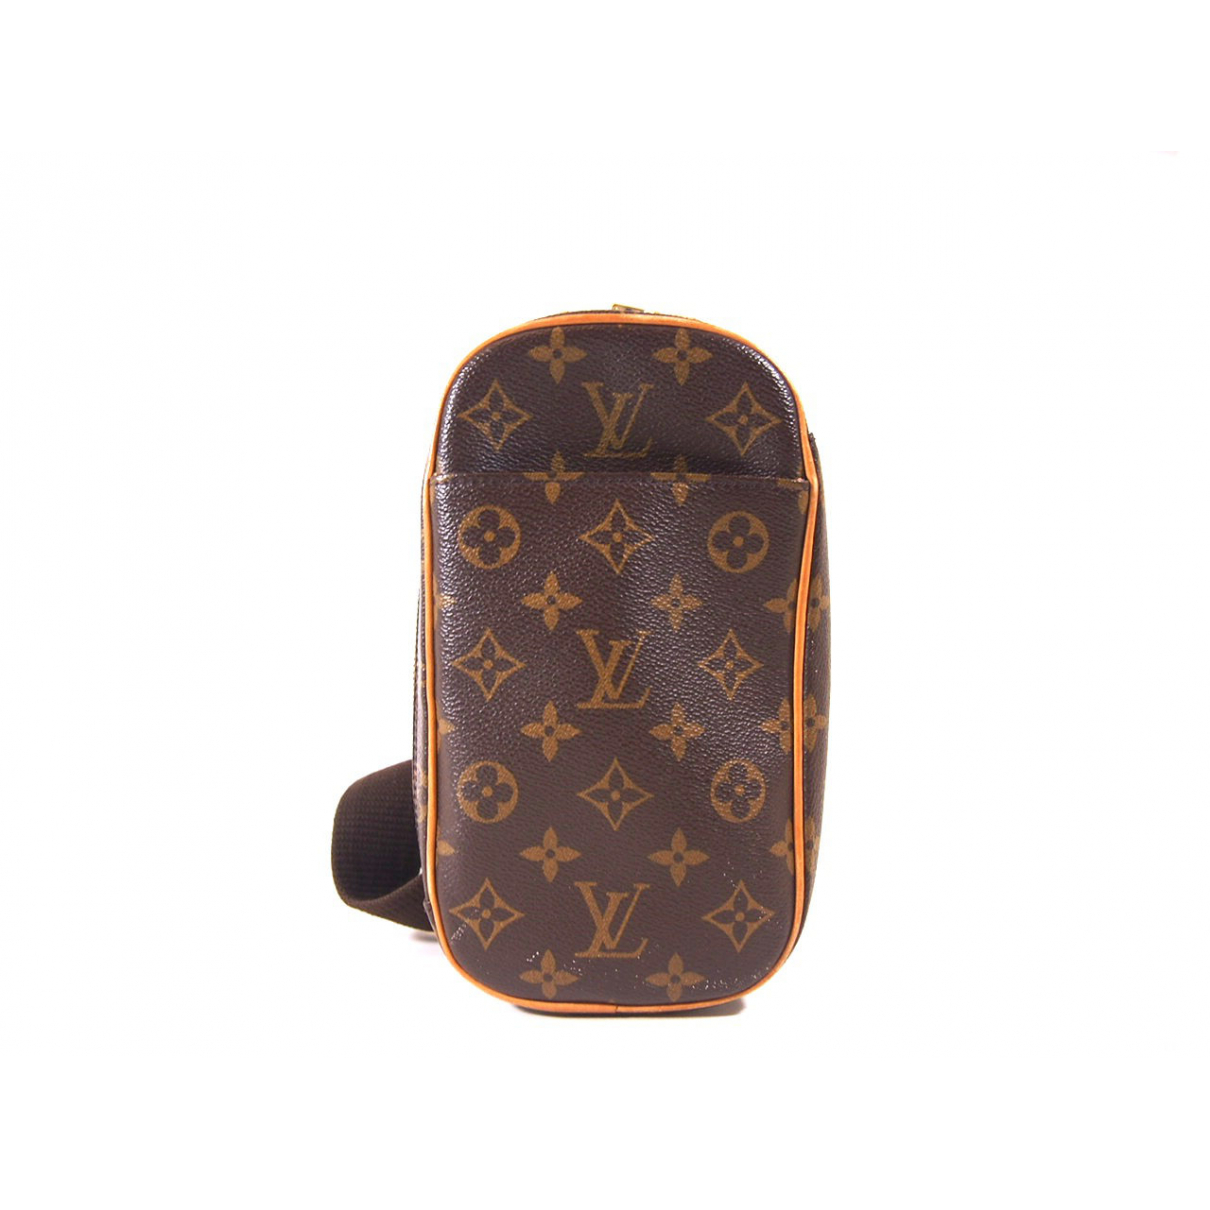 Louis Vuitton \N Brown Cloth Clutch bag for Women \N